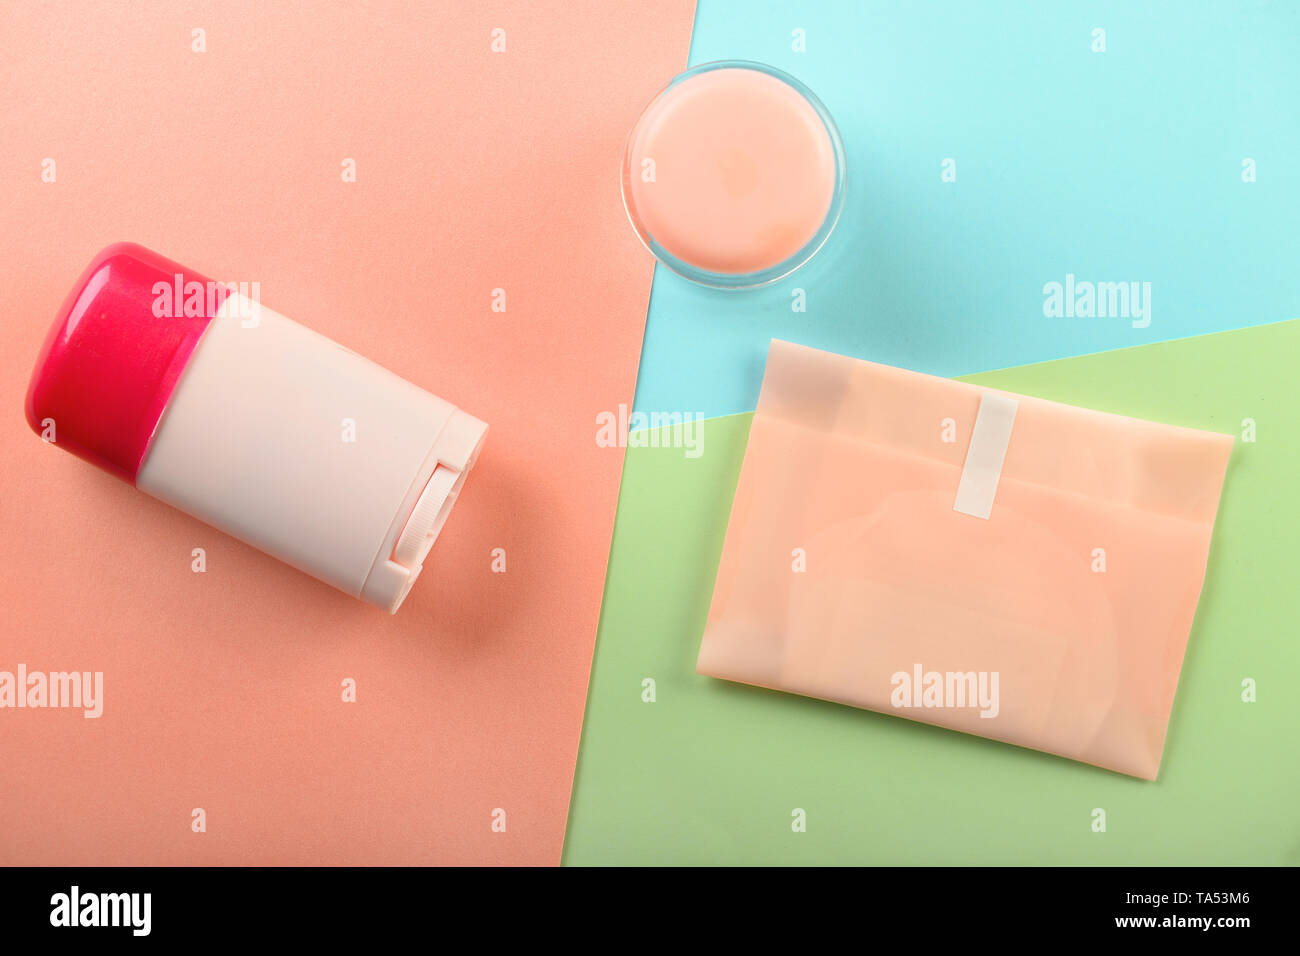 Items for personal hygiene on color background - Stock Image